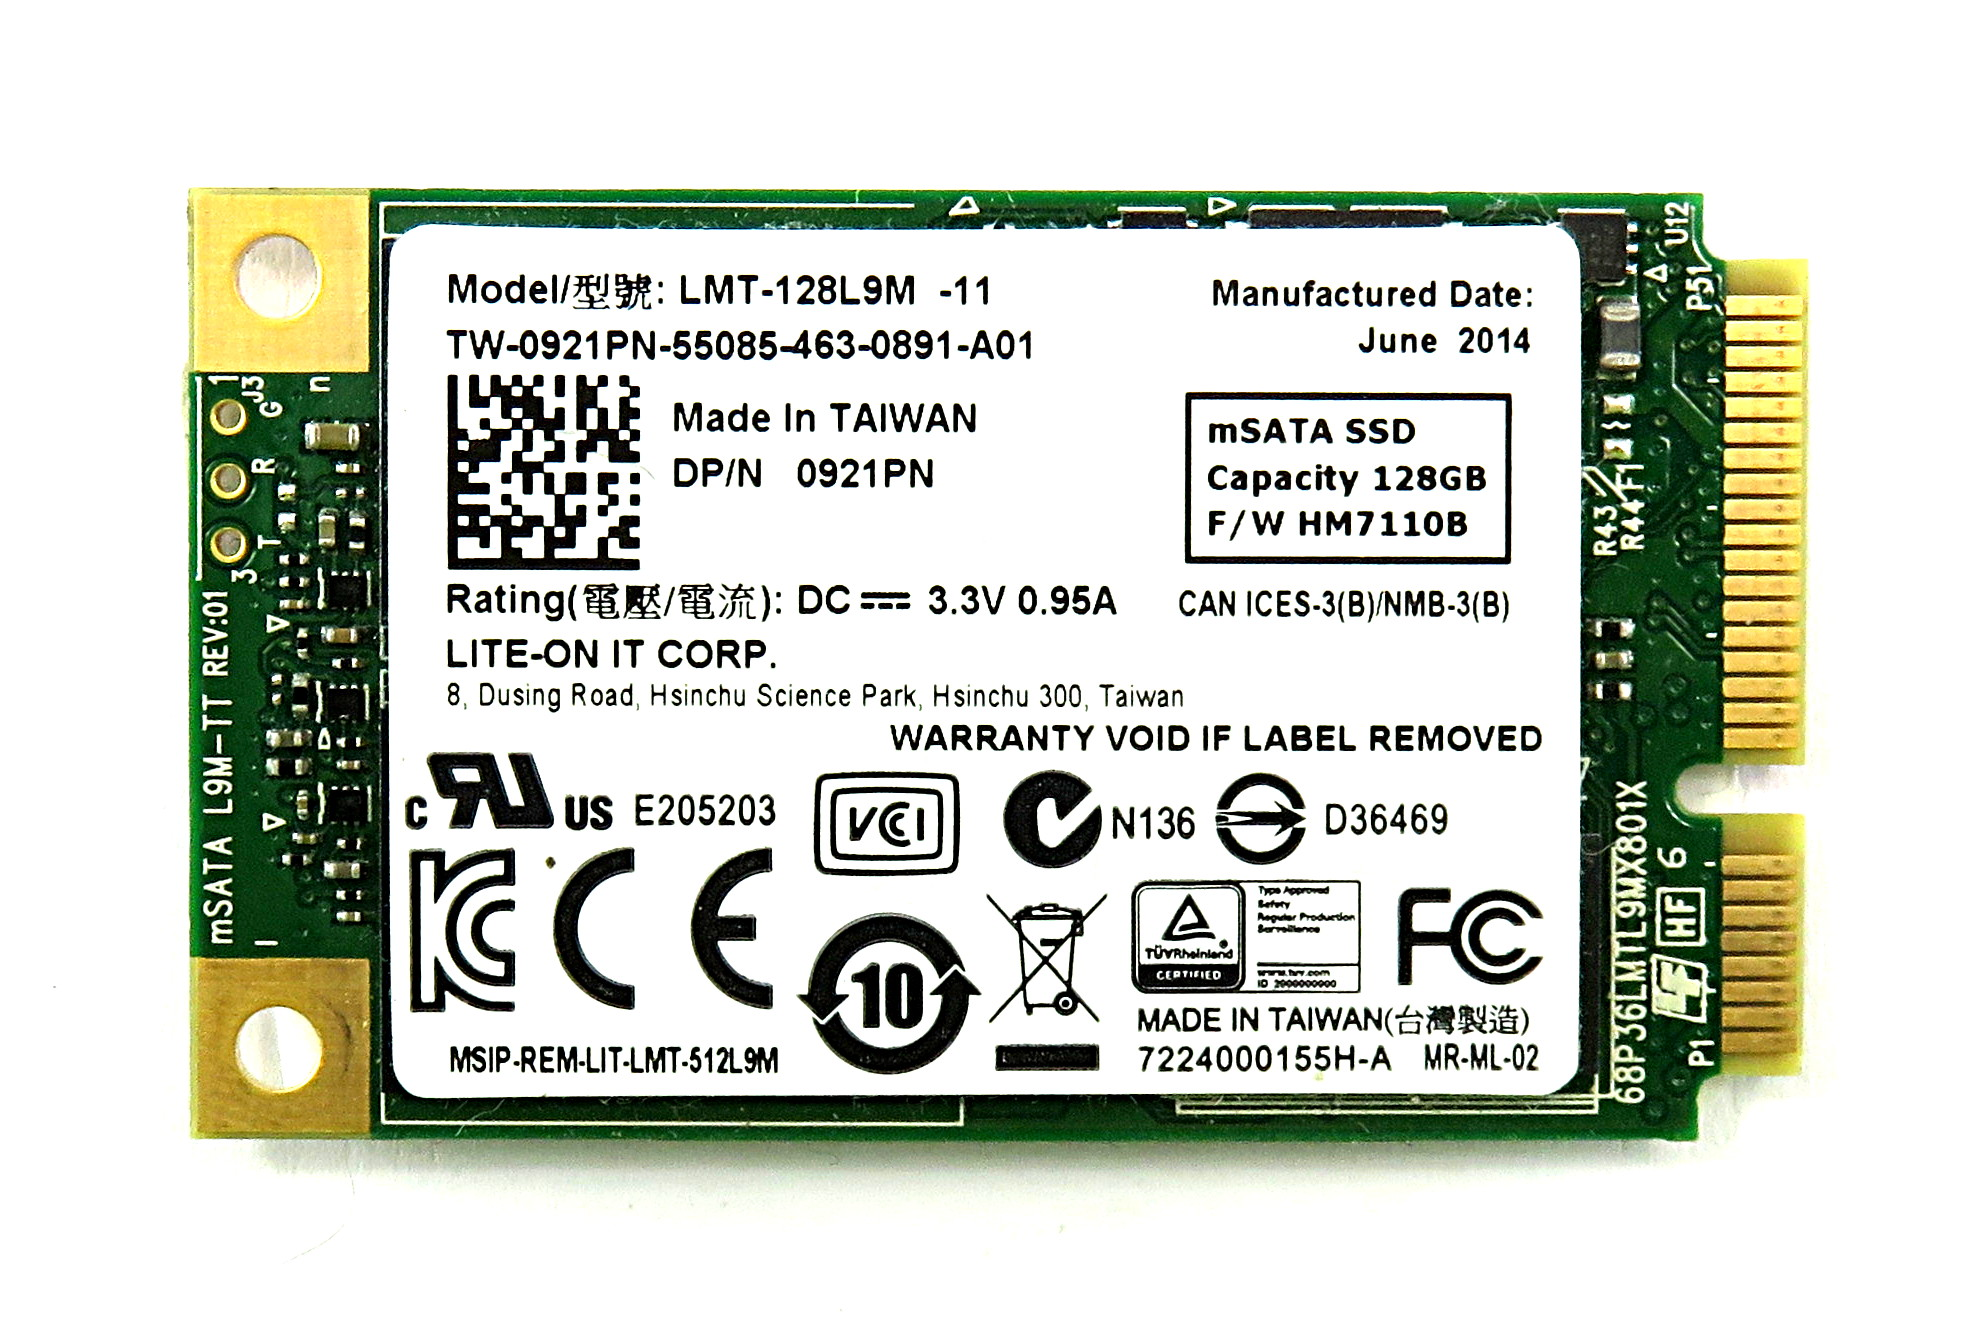 Dell 921PN 128GB mSATA SSD Lite-on LMT-128L9M